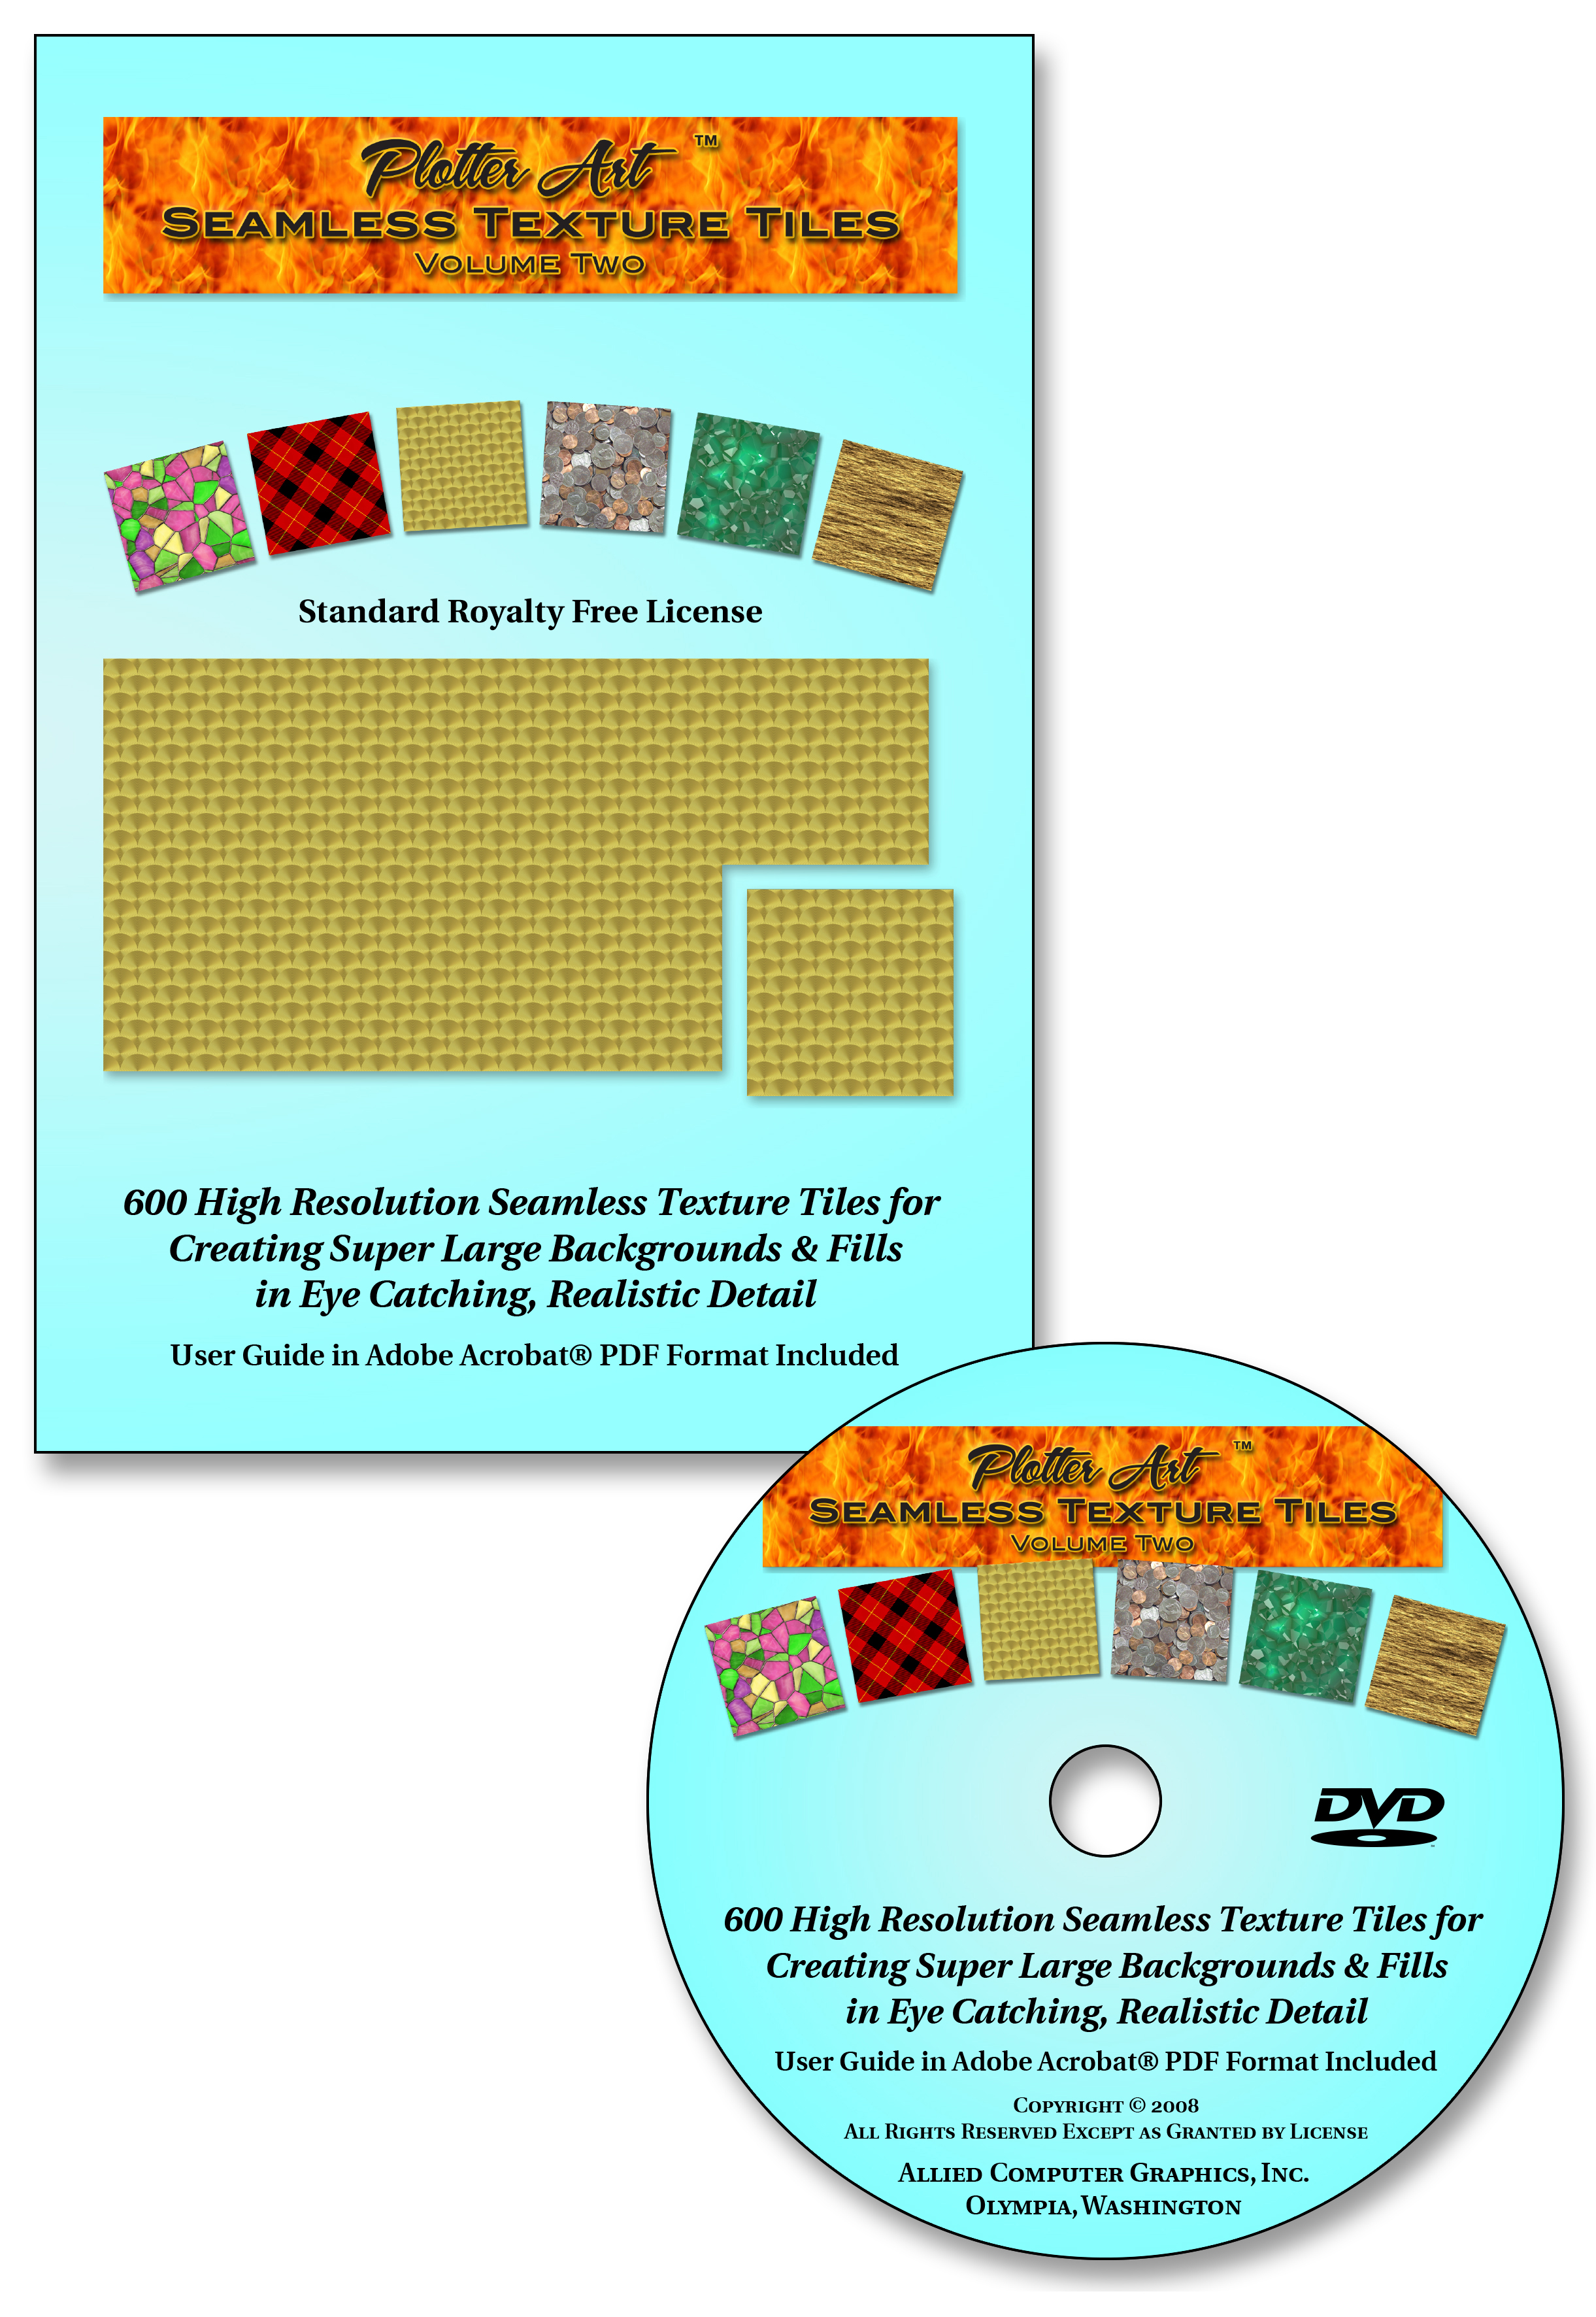 PASTT 2SL Cover Front with DVD.jpg